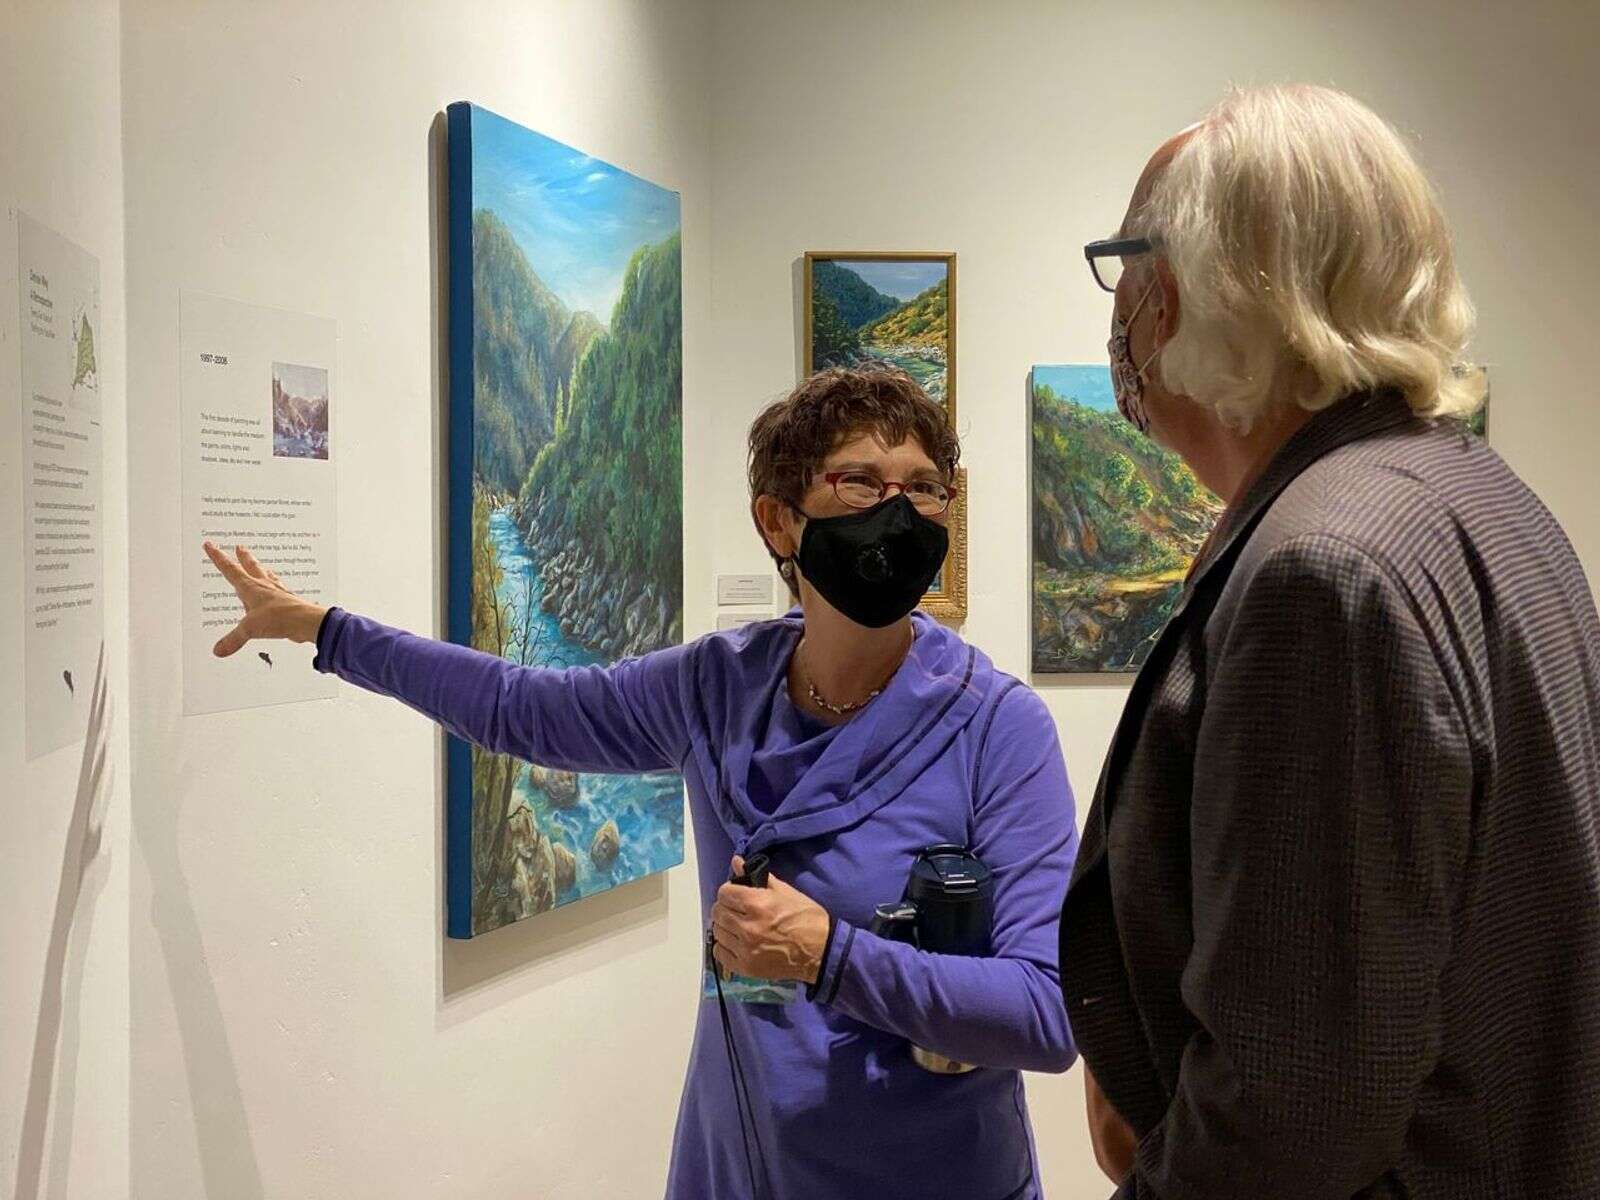 The Center for the Arts strives to support artists, like Denise Wey's Gallery Exhibit featured at the Center.